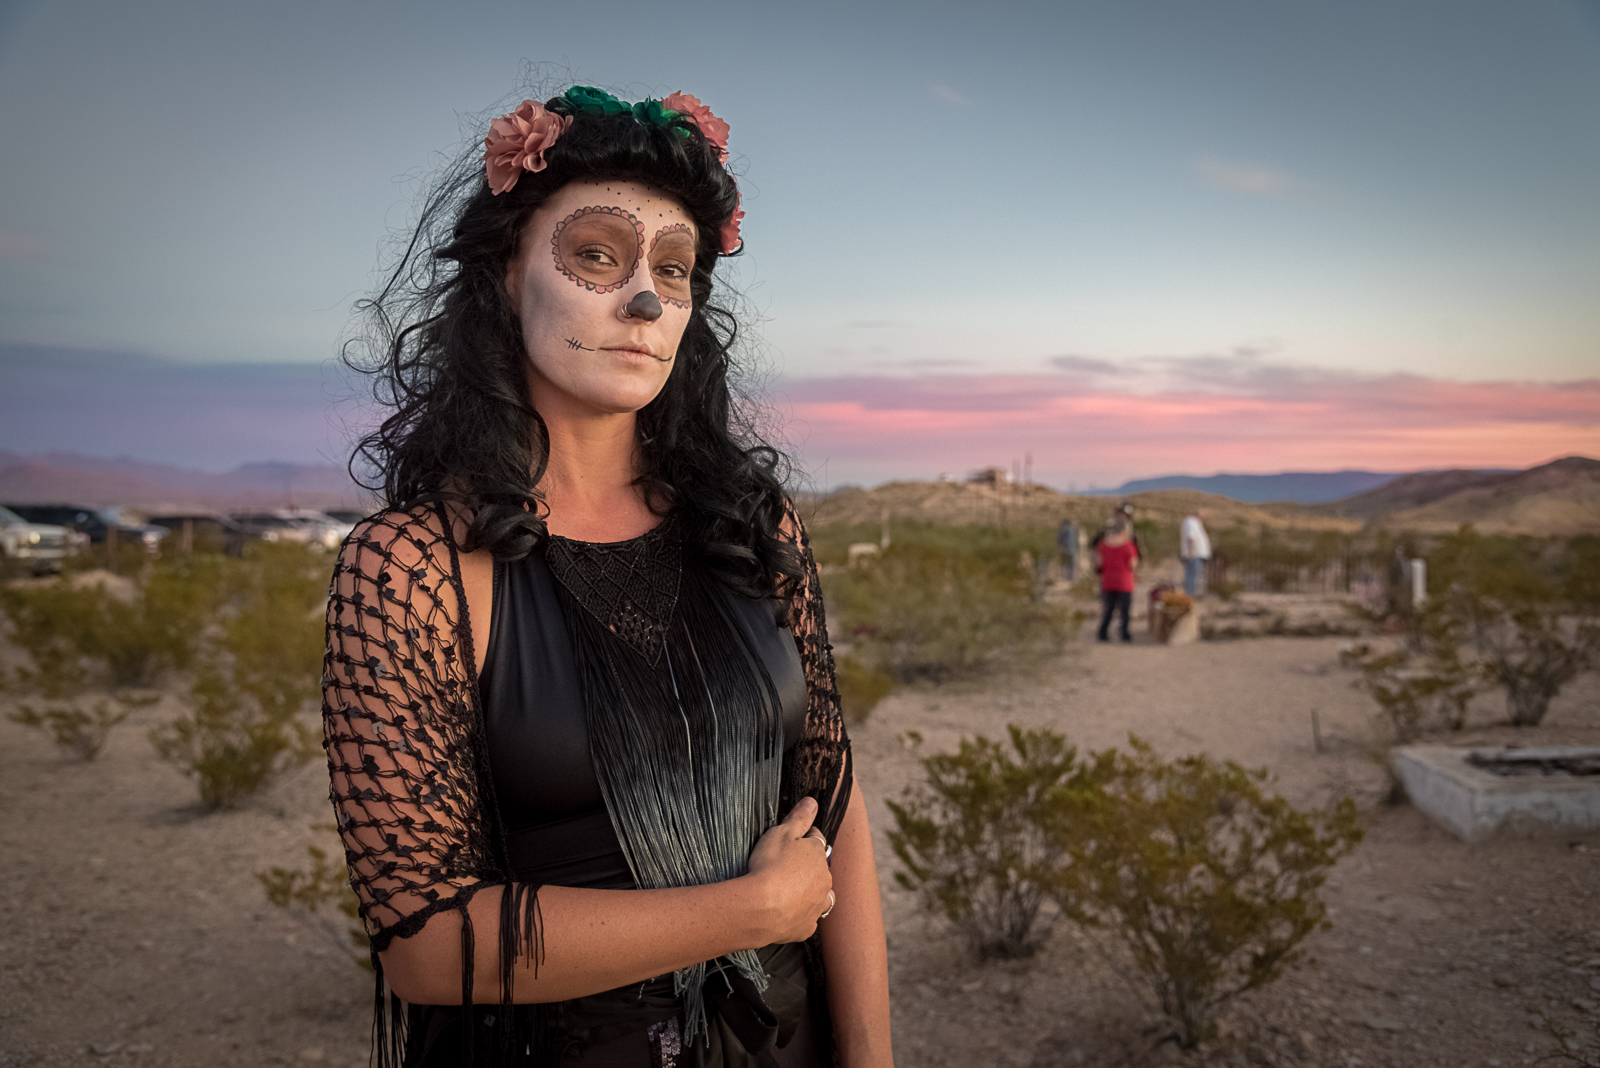 Terlingua_DayoftheDead_lady.jpg